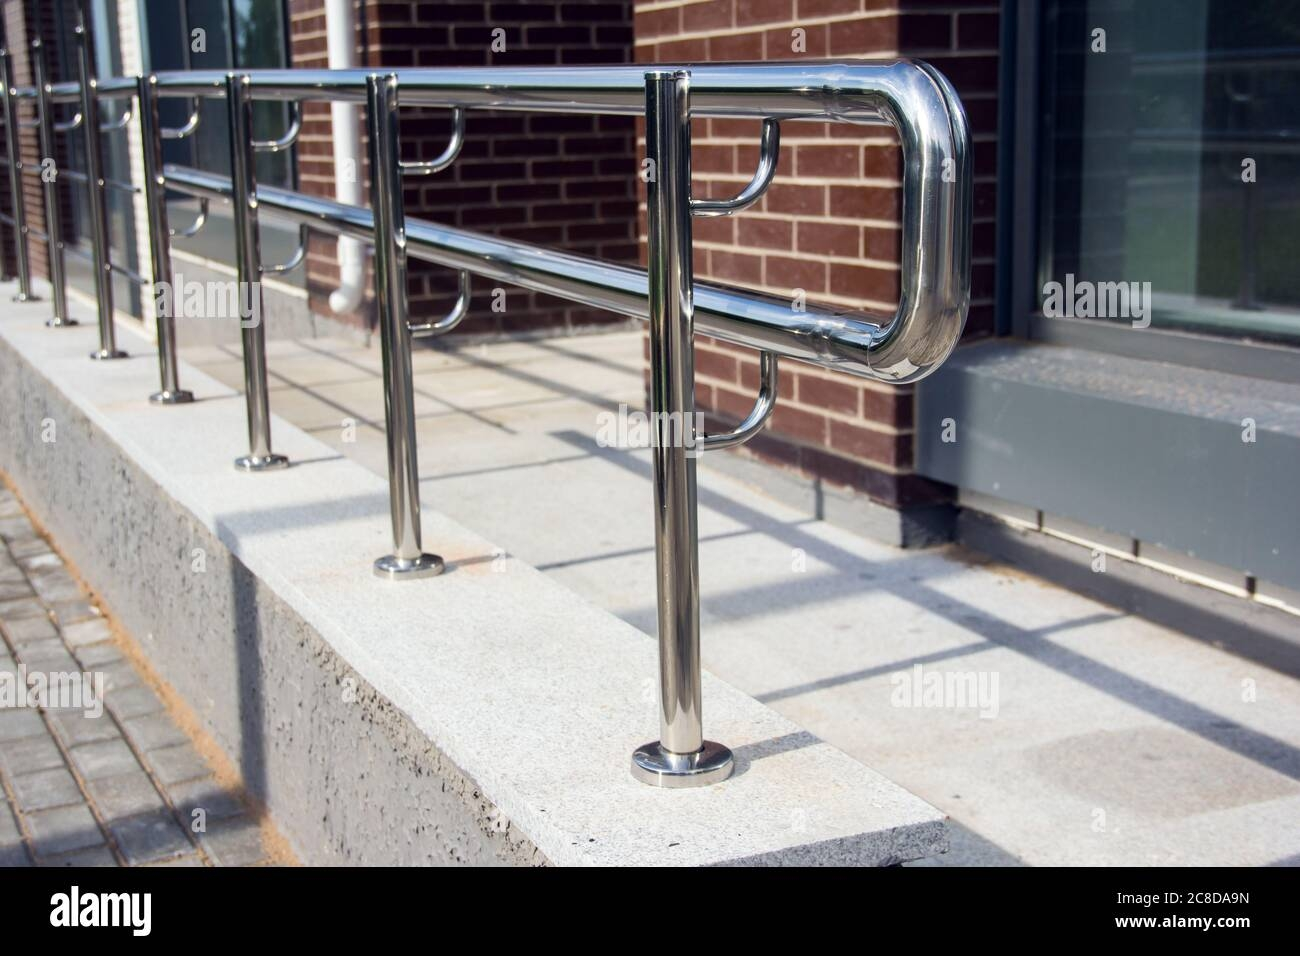 Stainless Steel Railings Chromed Metal Railings Shiny Chrome | Stainless Steel Outdoor Handrails | Safety | Stainless Pipe | Hand Rail | Tube | Square